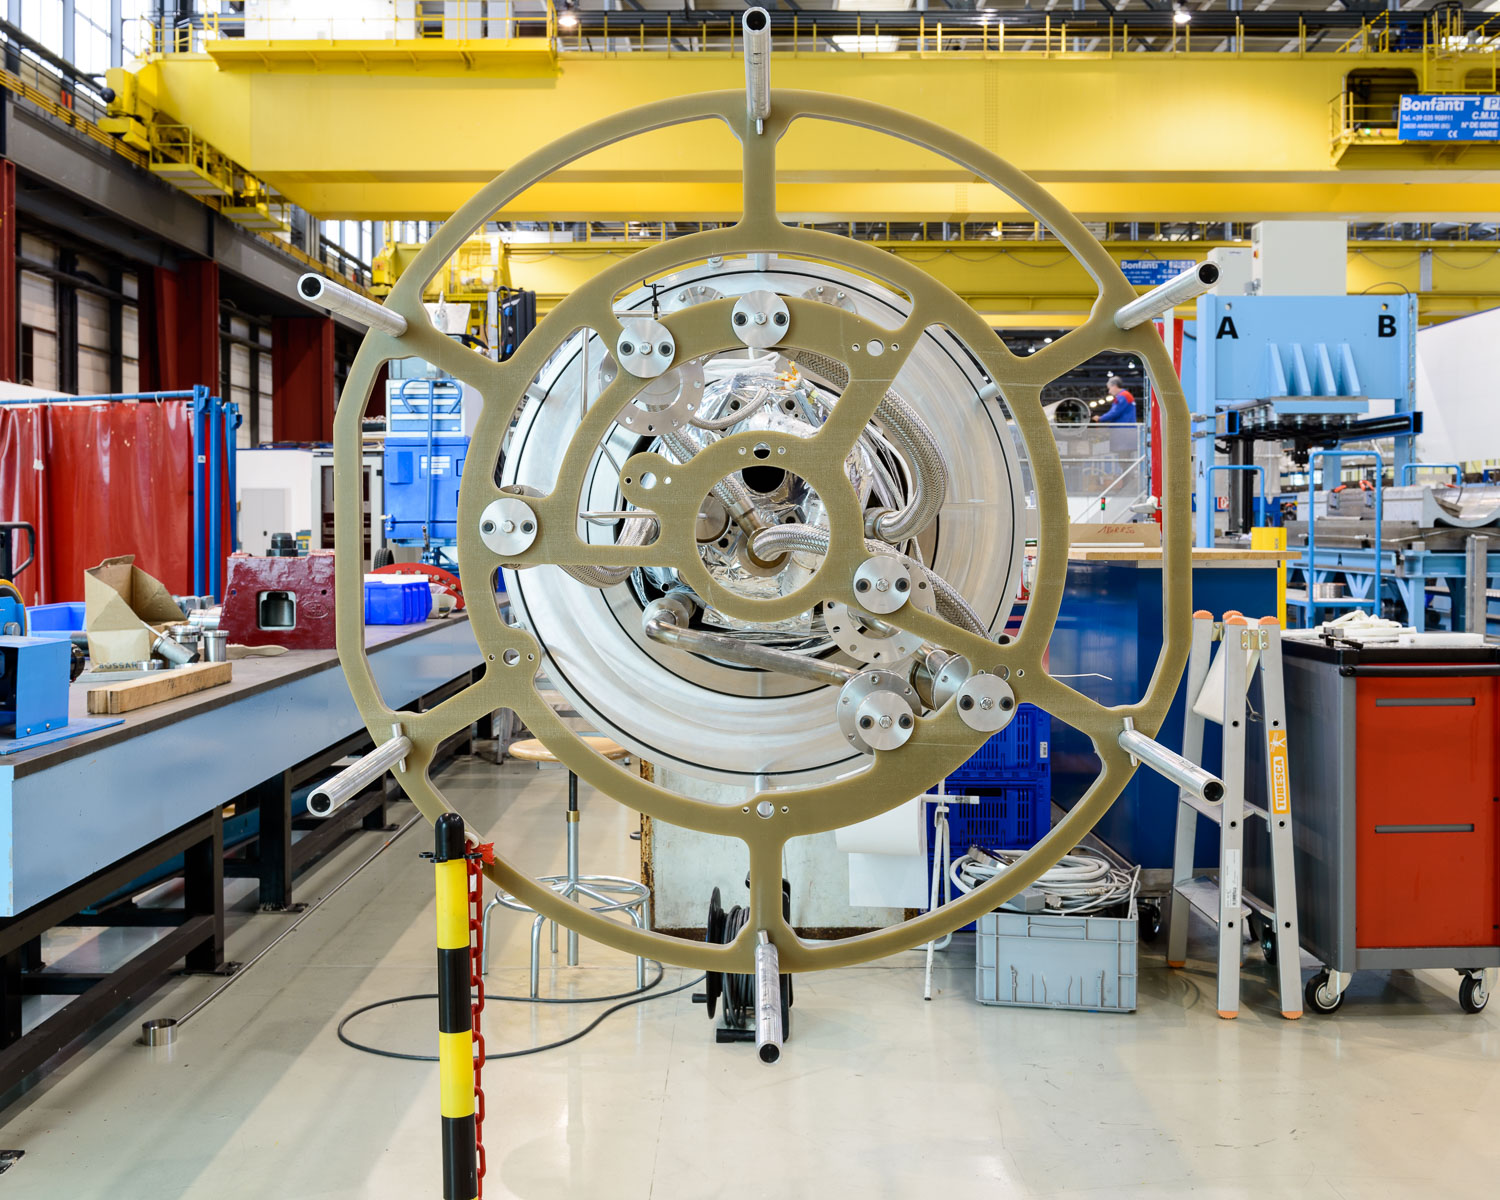 CERN-3-(c)-Alastair-Philip-Wiper-DSC_2251.jpg